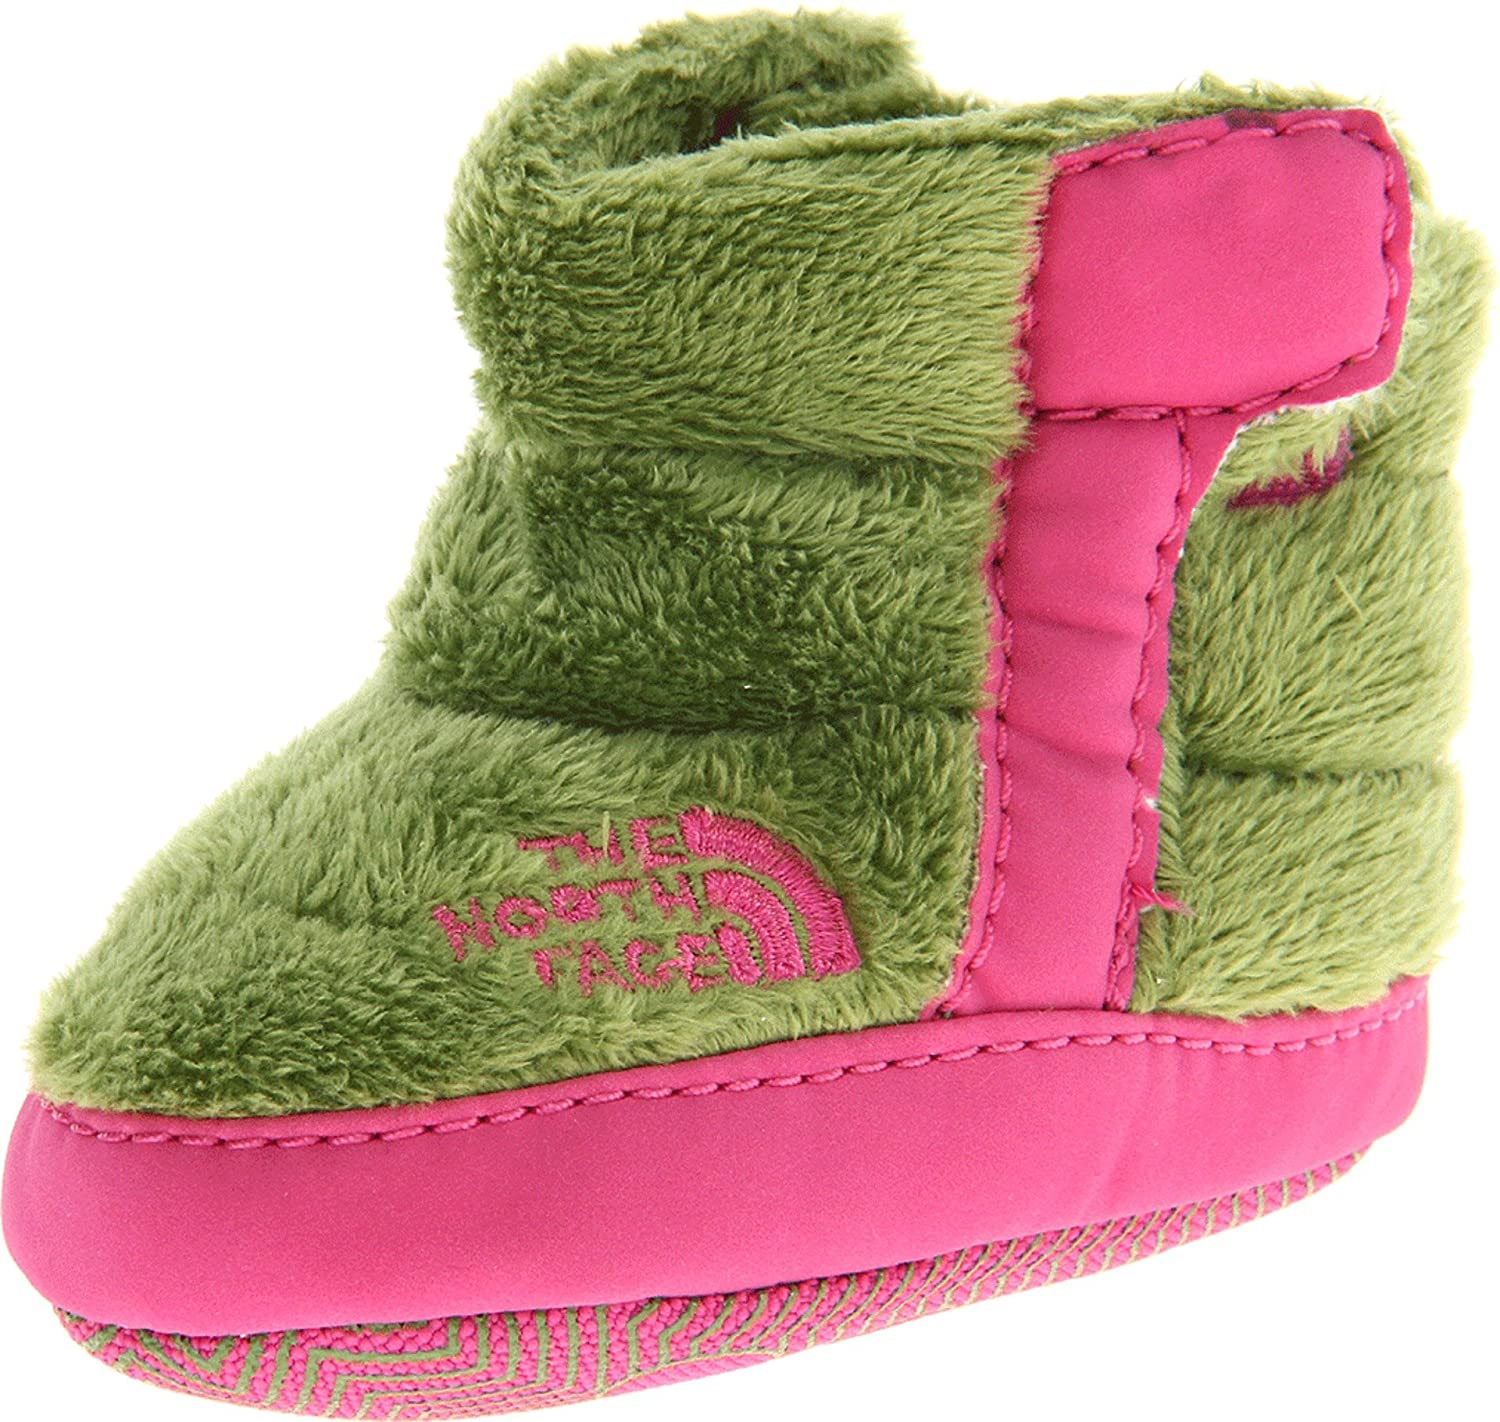 0287fce59 Amazon.com | The North Face NSE Fleece Bootie (Infant) | Boots